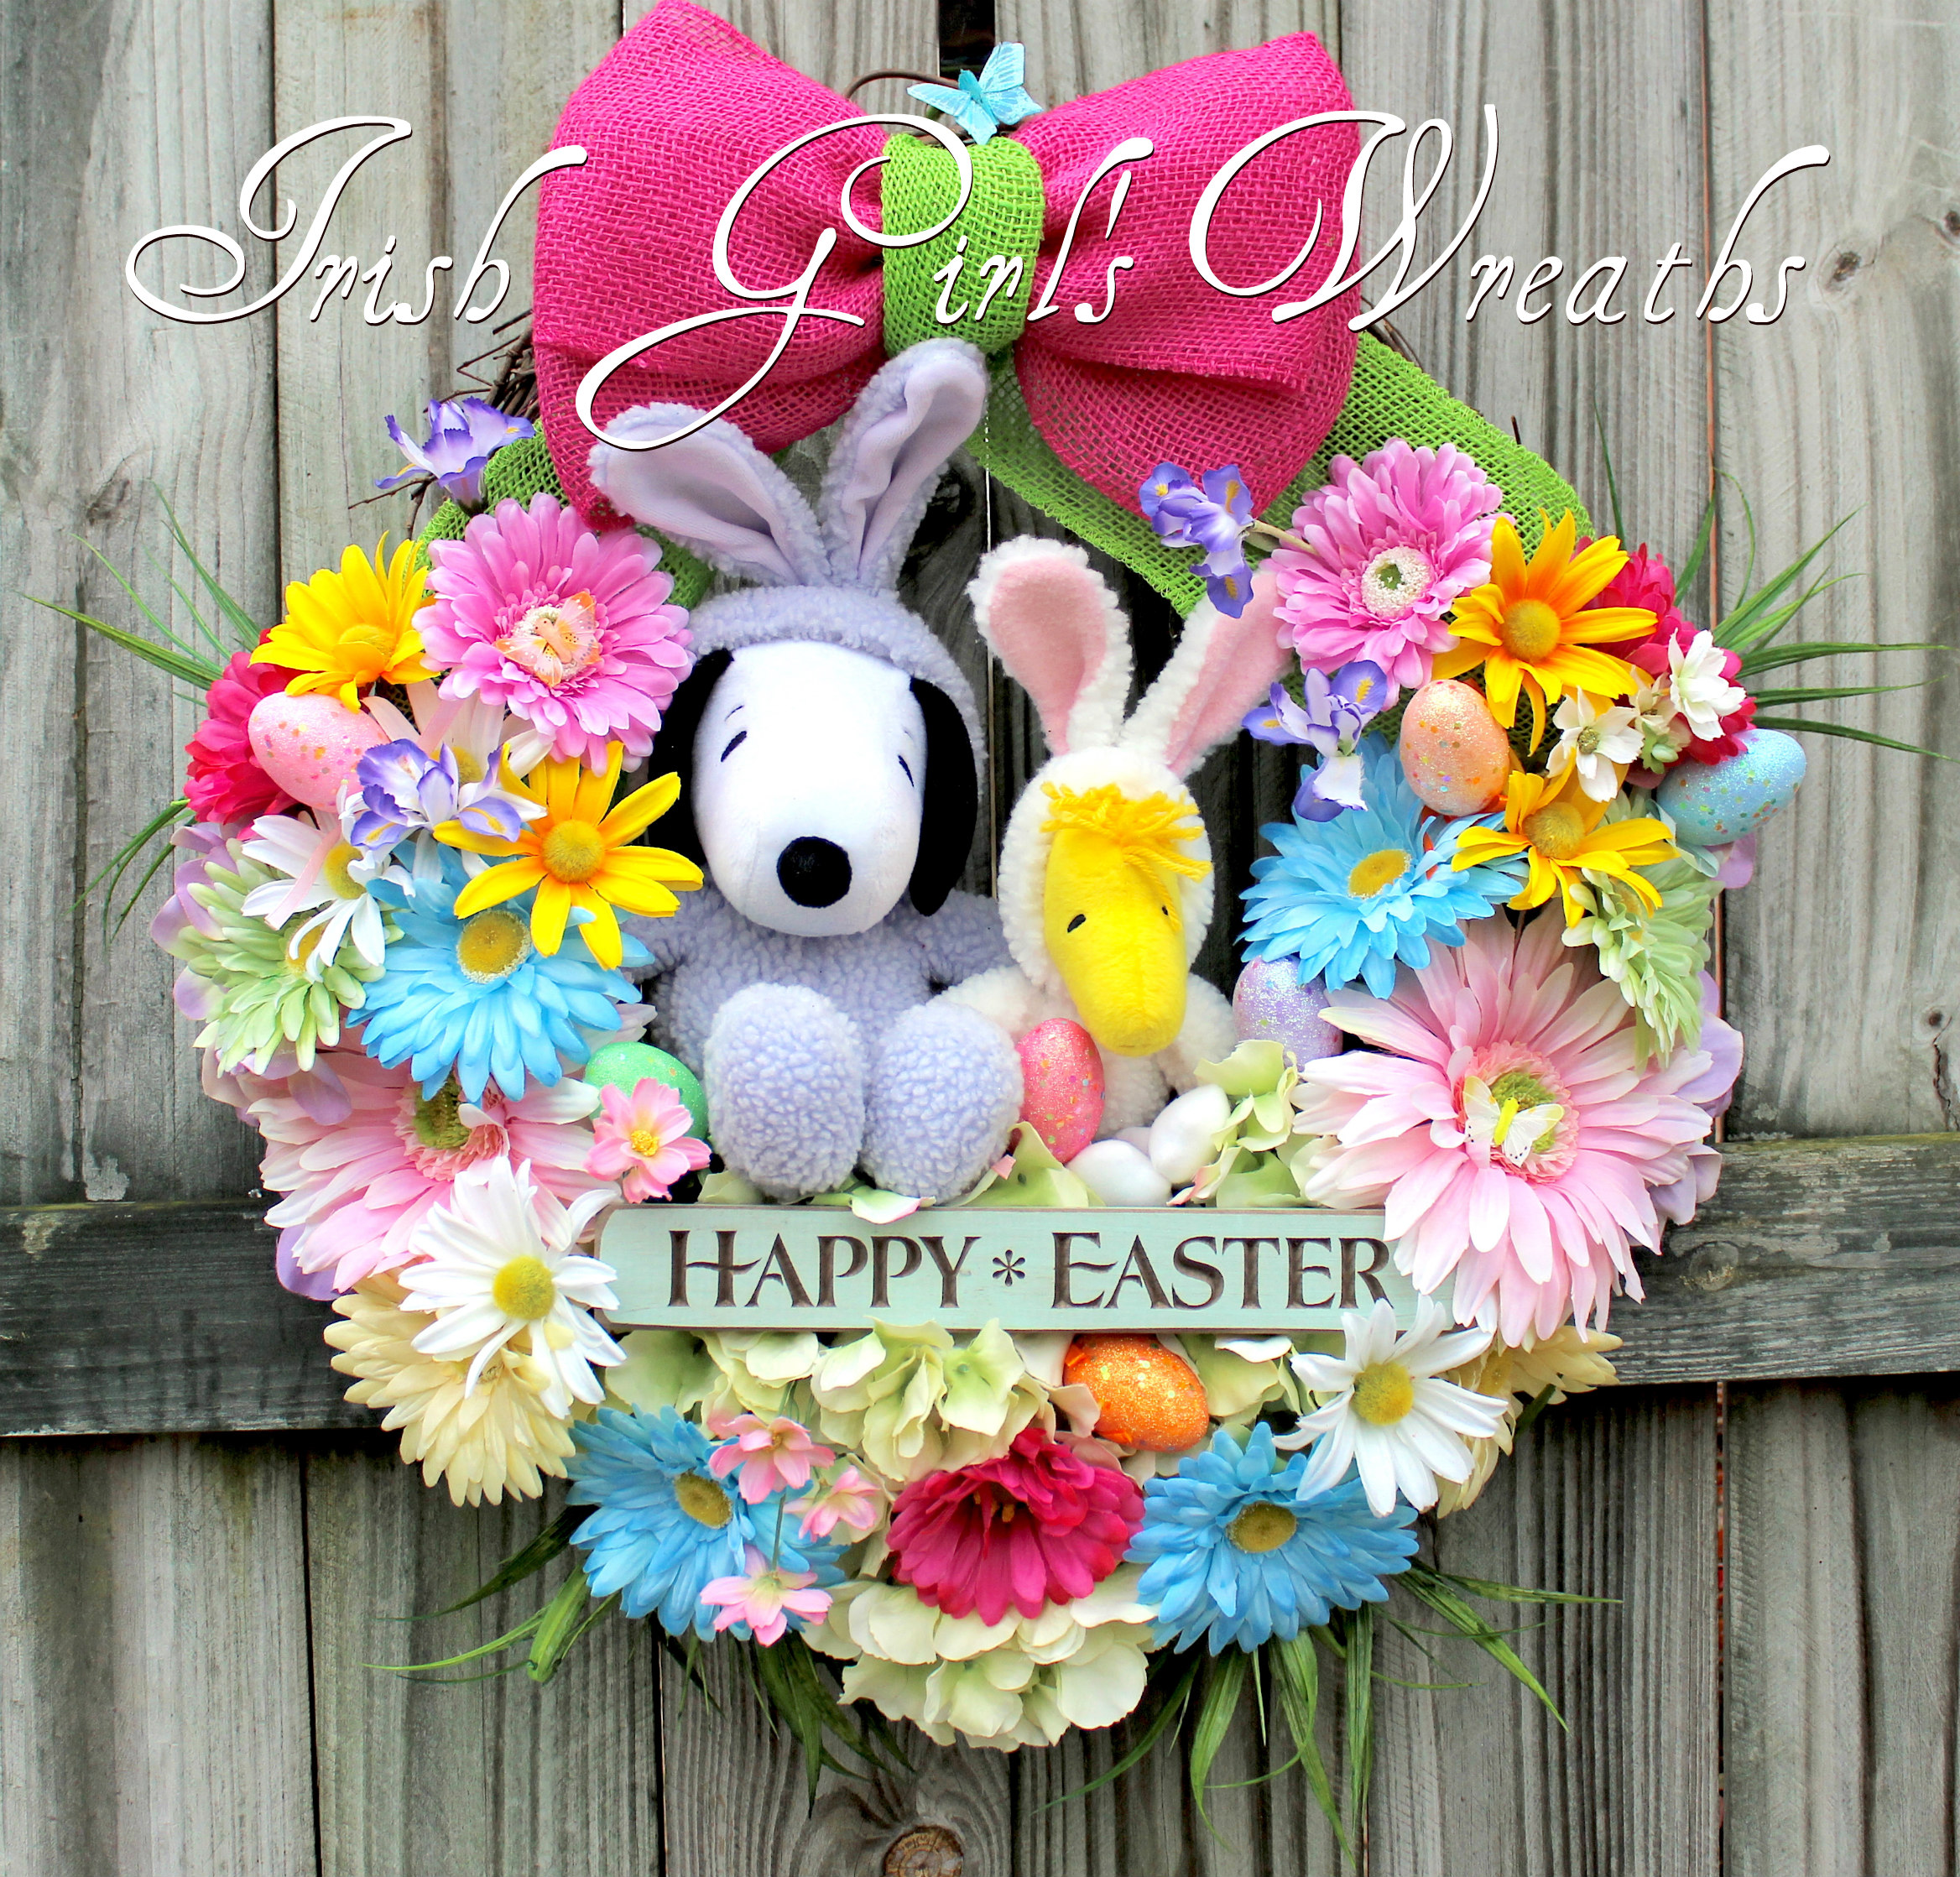 Peanuts Easter Beagle Snoopy and Woodstock Easter Wreath, Purple Bunny Snoopy, custom for Vicki